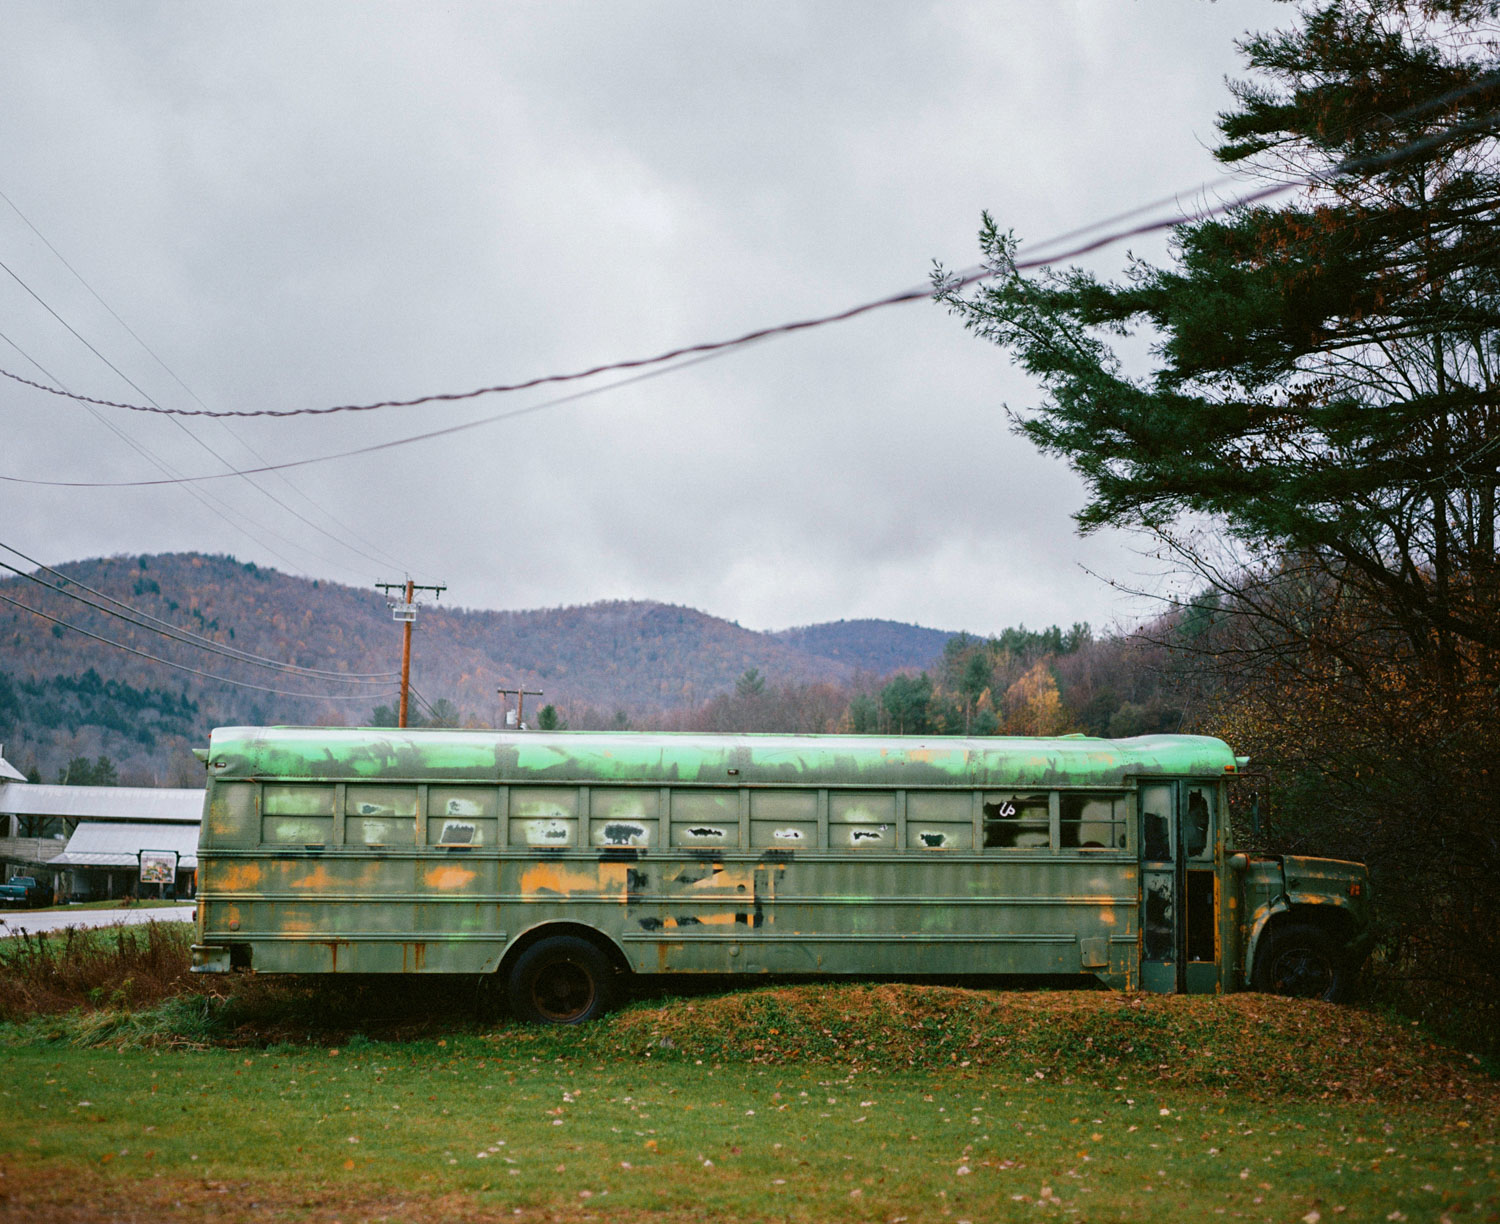 deserted bus in pittsfield